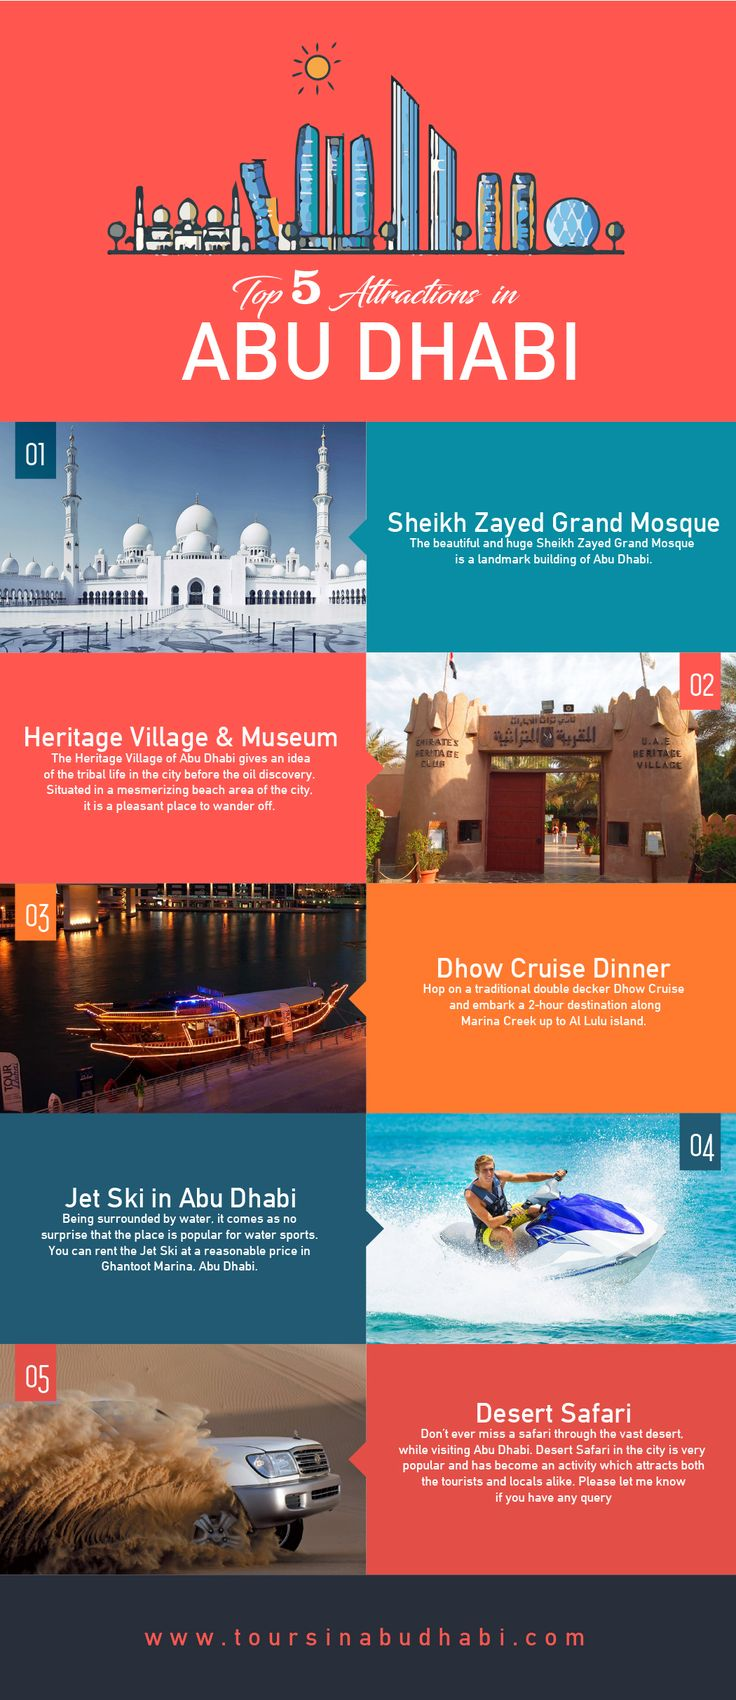 Top 5 Attractions In Abu Dhabi That You Must Explore #Infographic #Travel #AbuDhabi